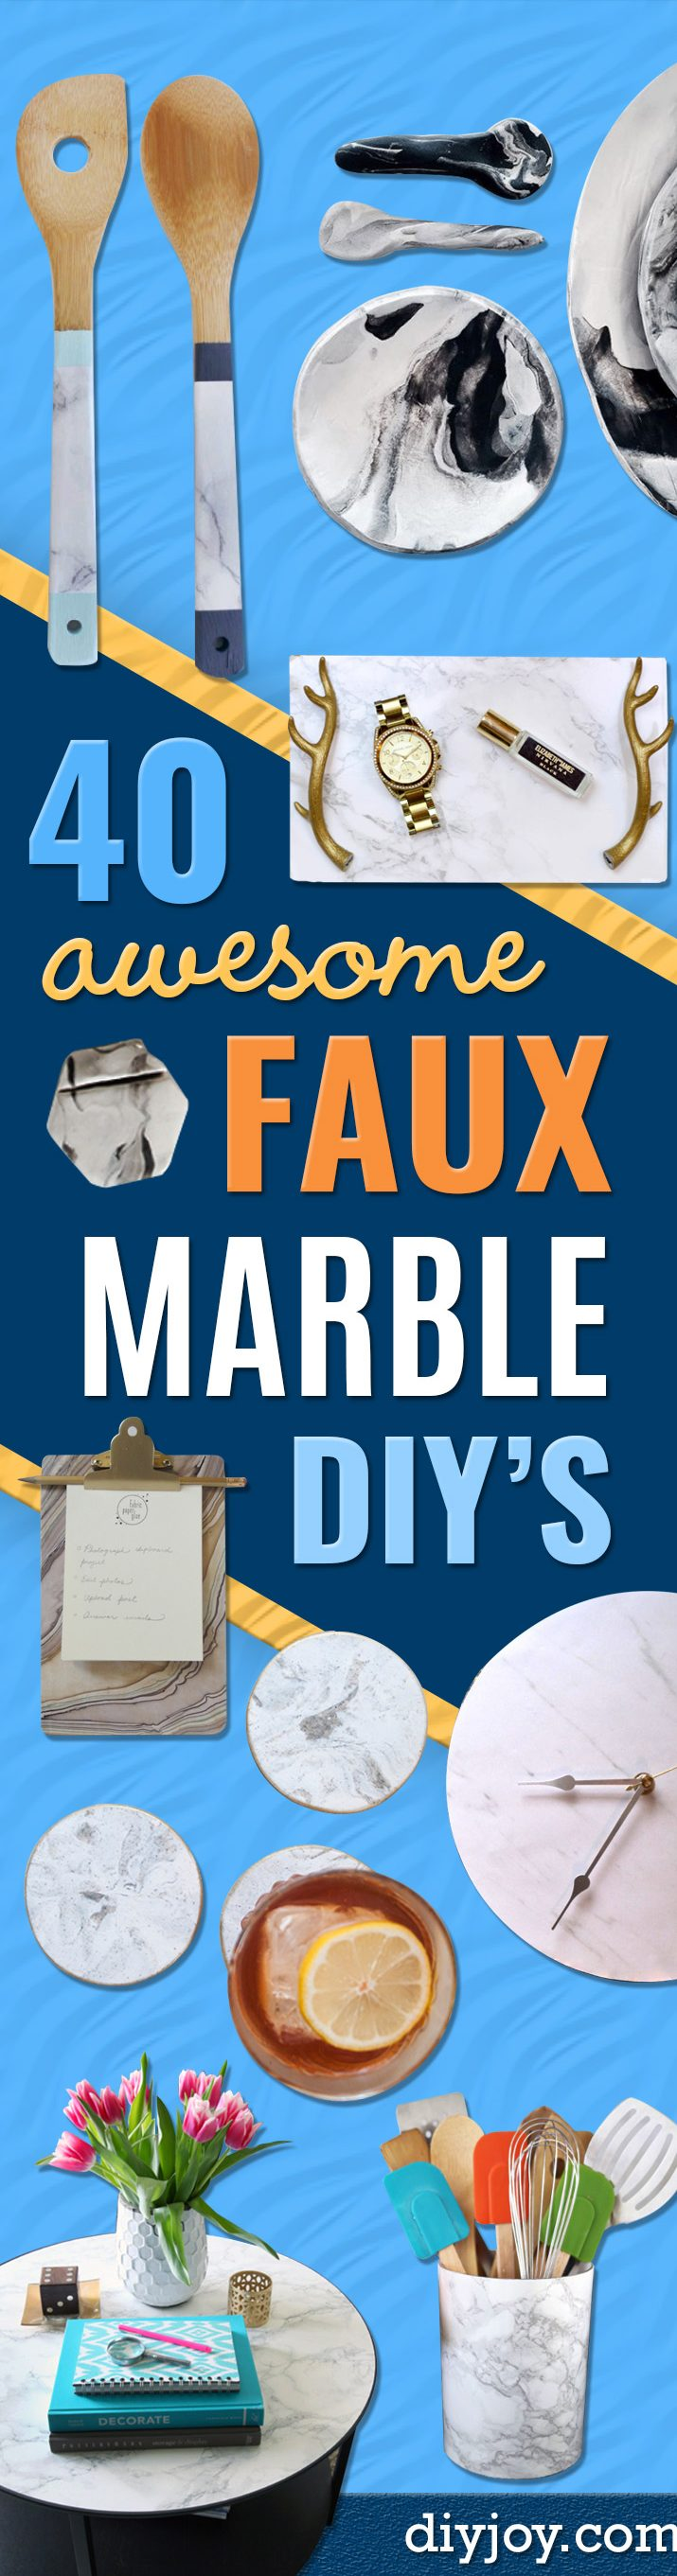 DIY Faux Marble Ideas - Easy Crafts and DIY Projects With Faux Marbling Tutorials - Paint and Decorate Home Decor, Creative DIY Gifts and Office Accessories